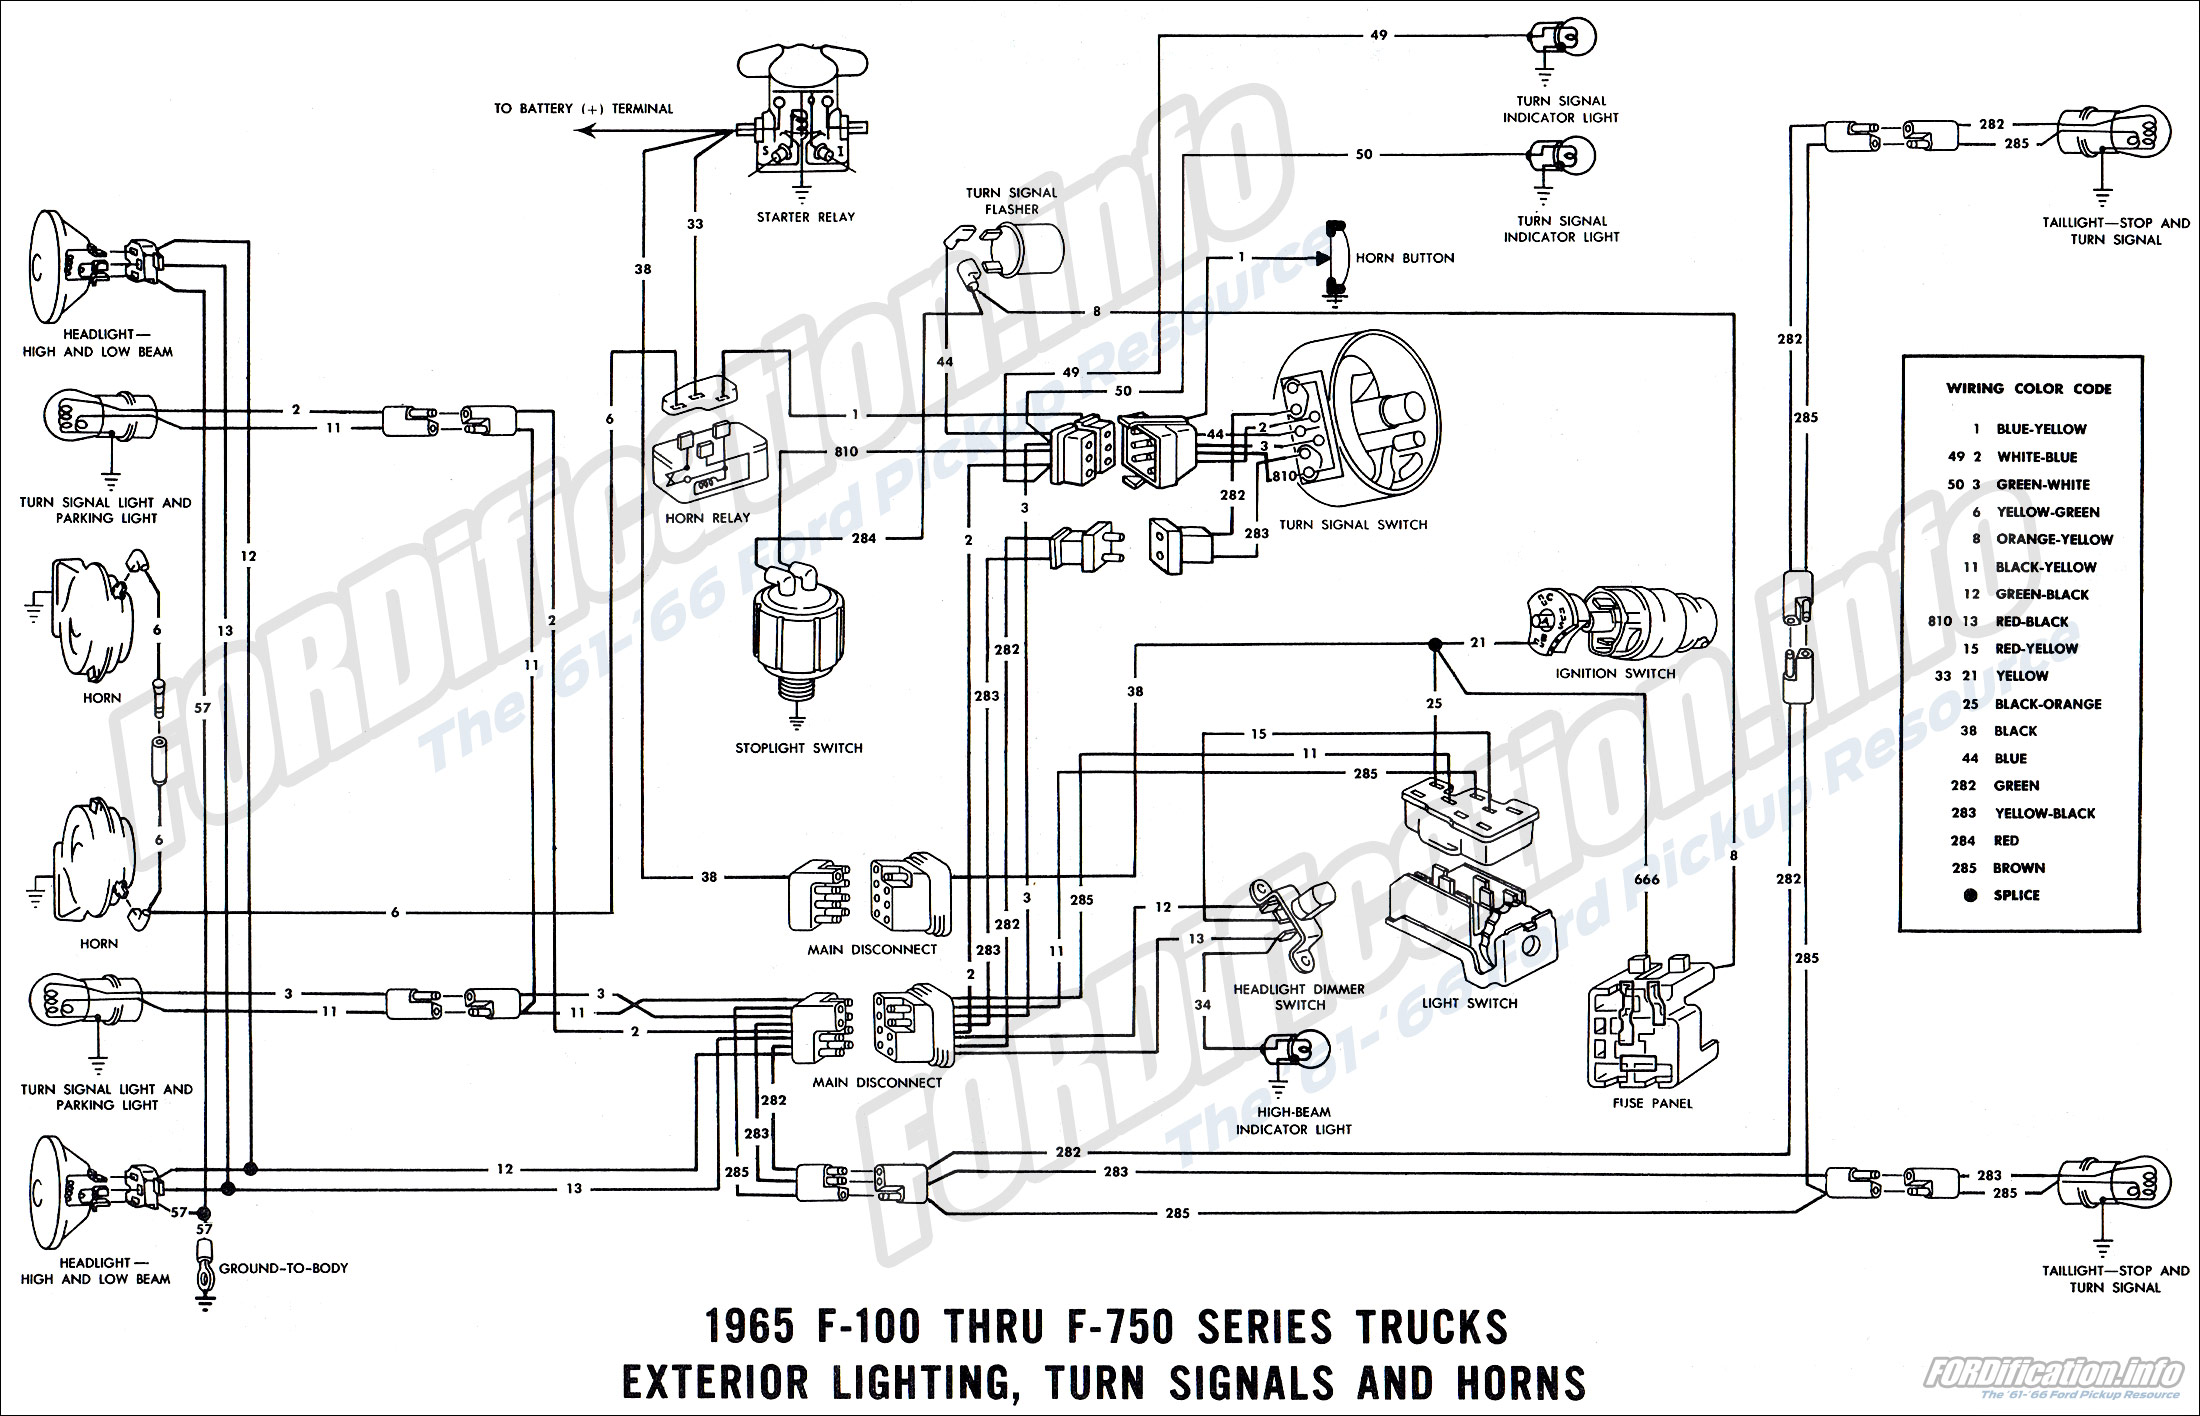 1996 ford truck foldout wiring diagram f700 ft900 and f800 cab